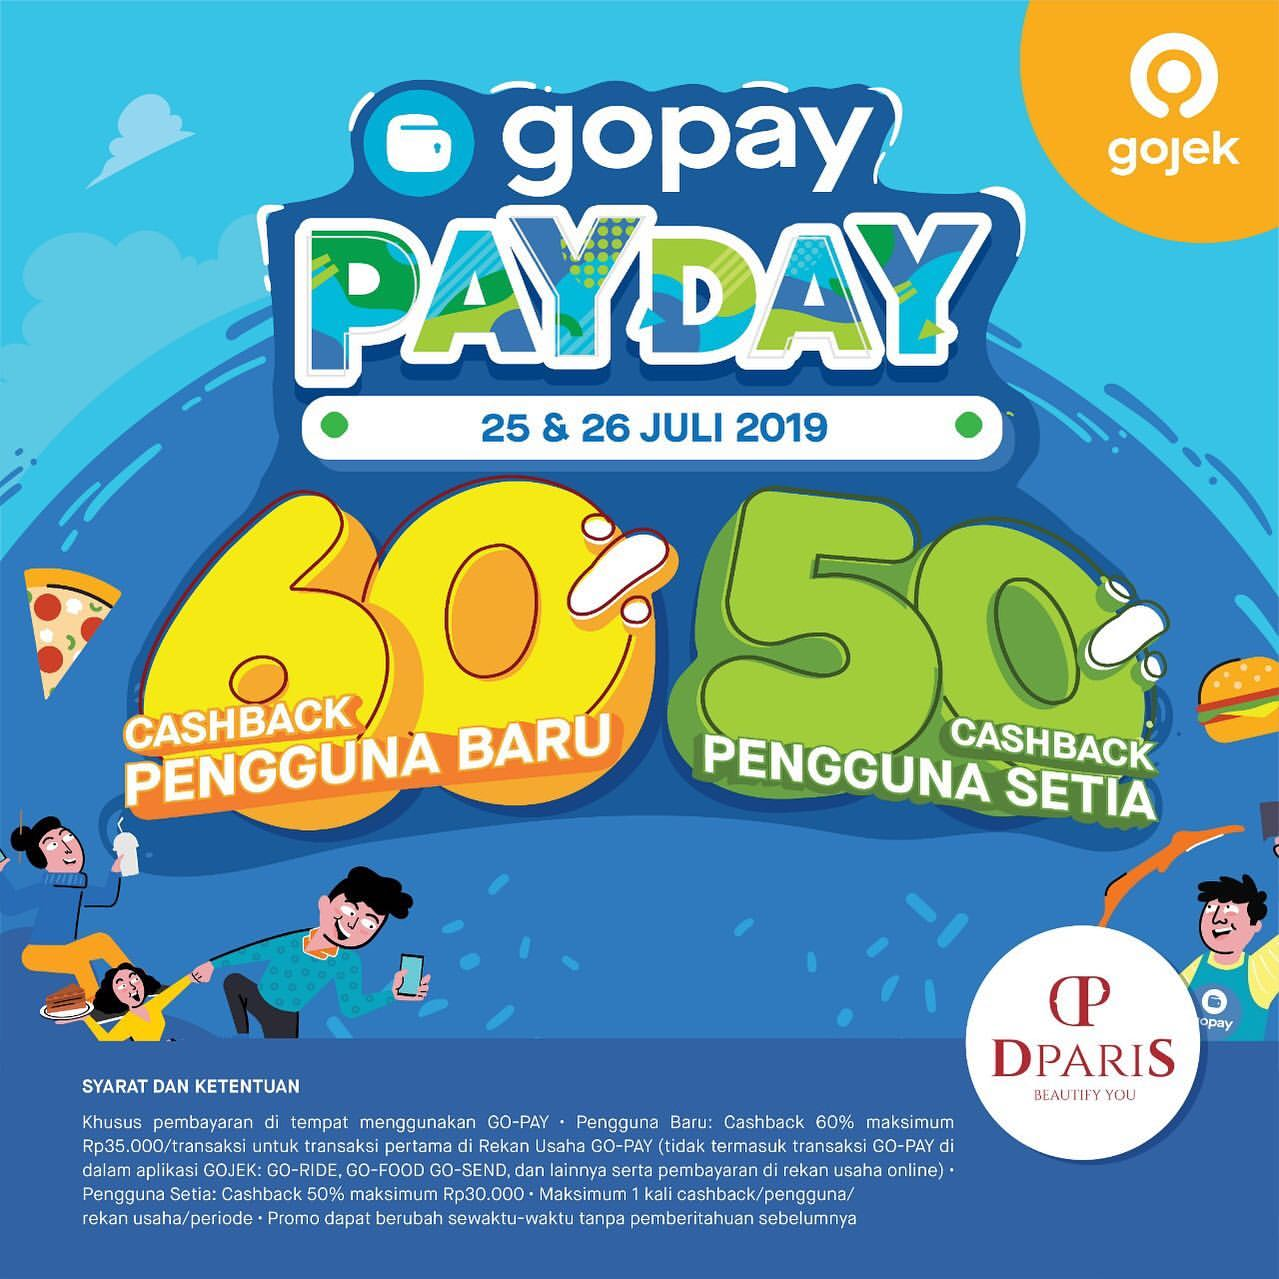 DPARIS Promo GOPAY PAYDAY, Cashback up to 60%!